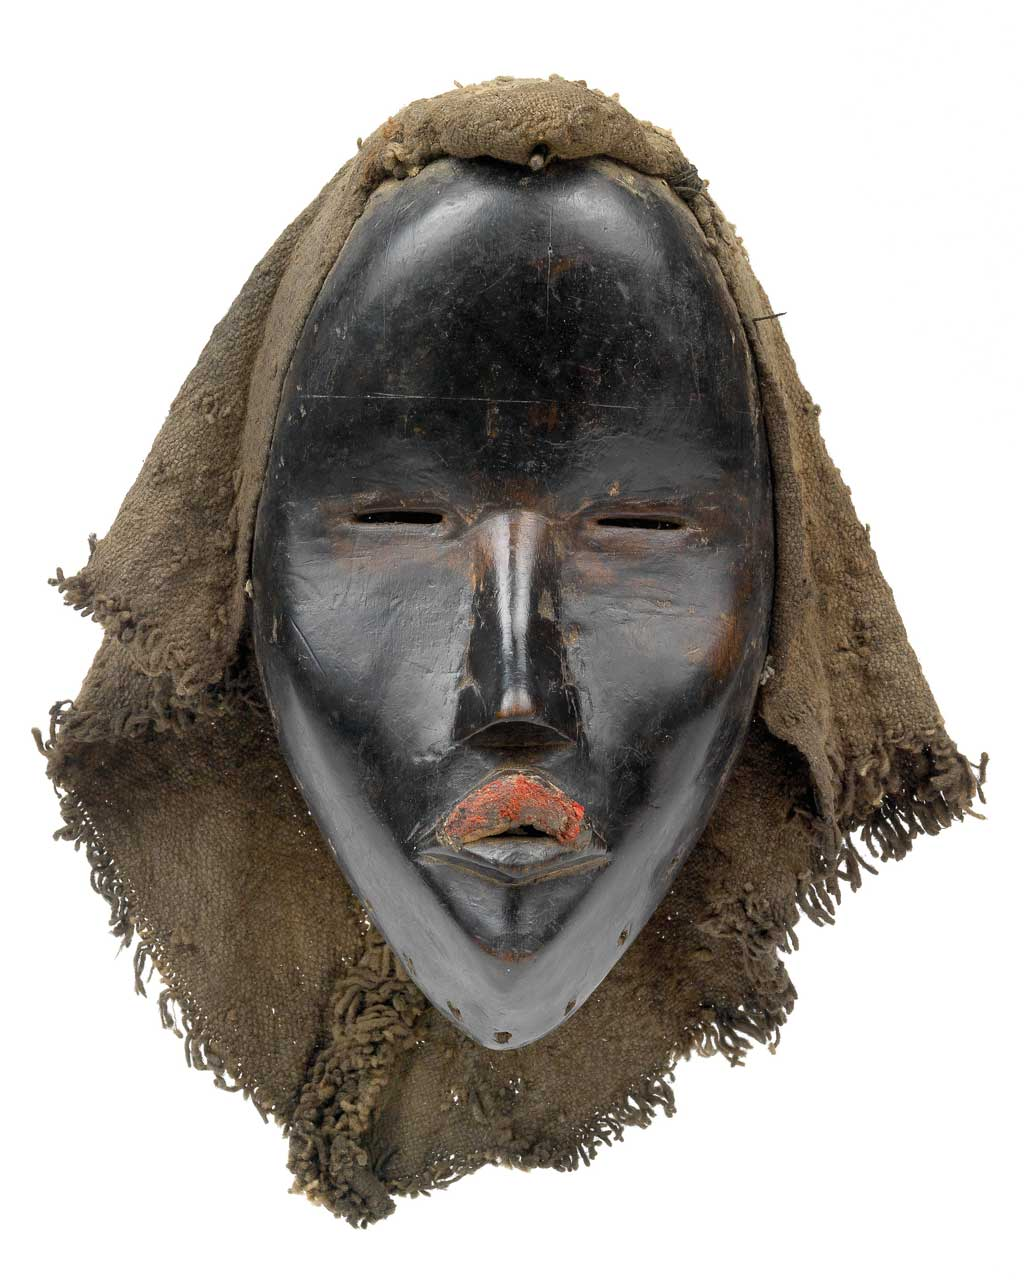 African masks appear in Dorotheum, Vienna, sale